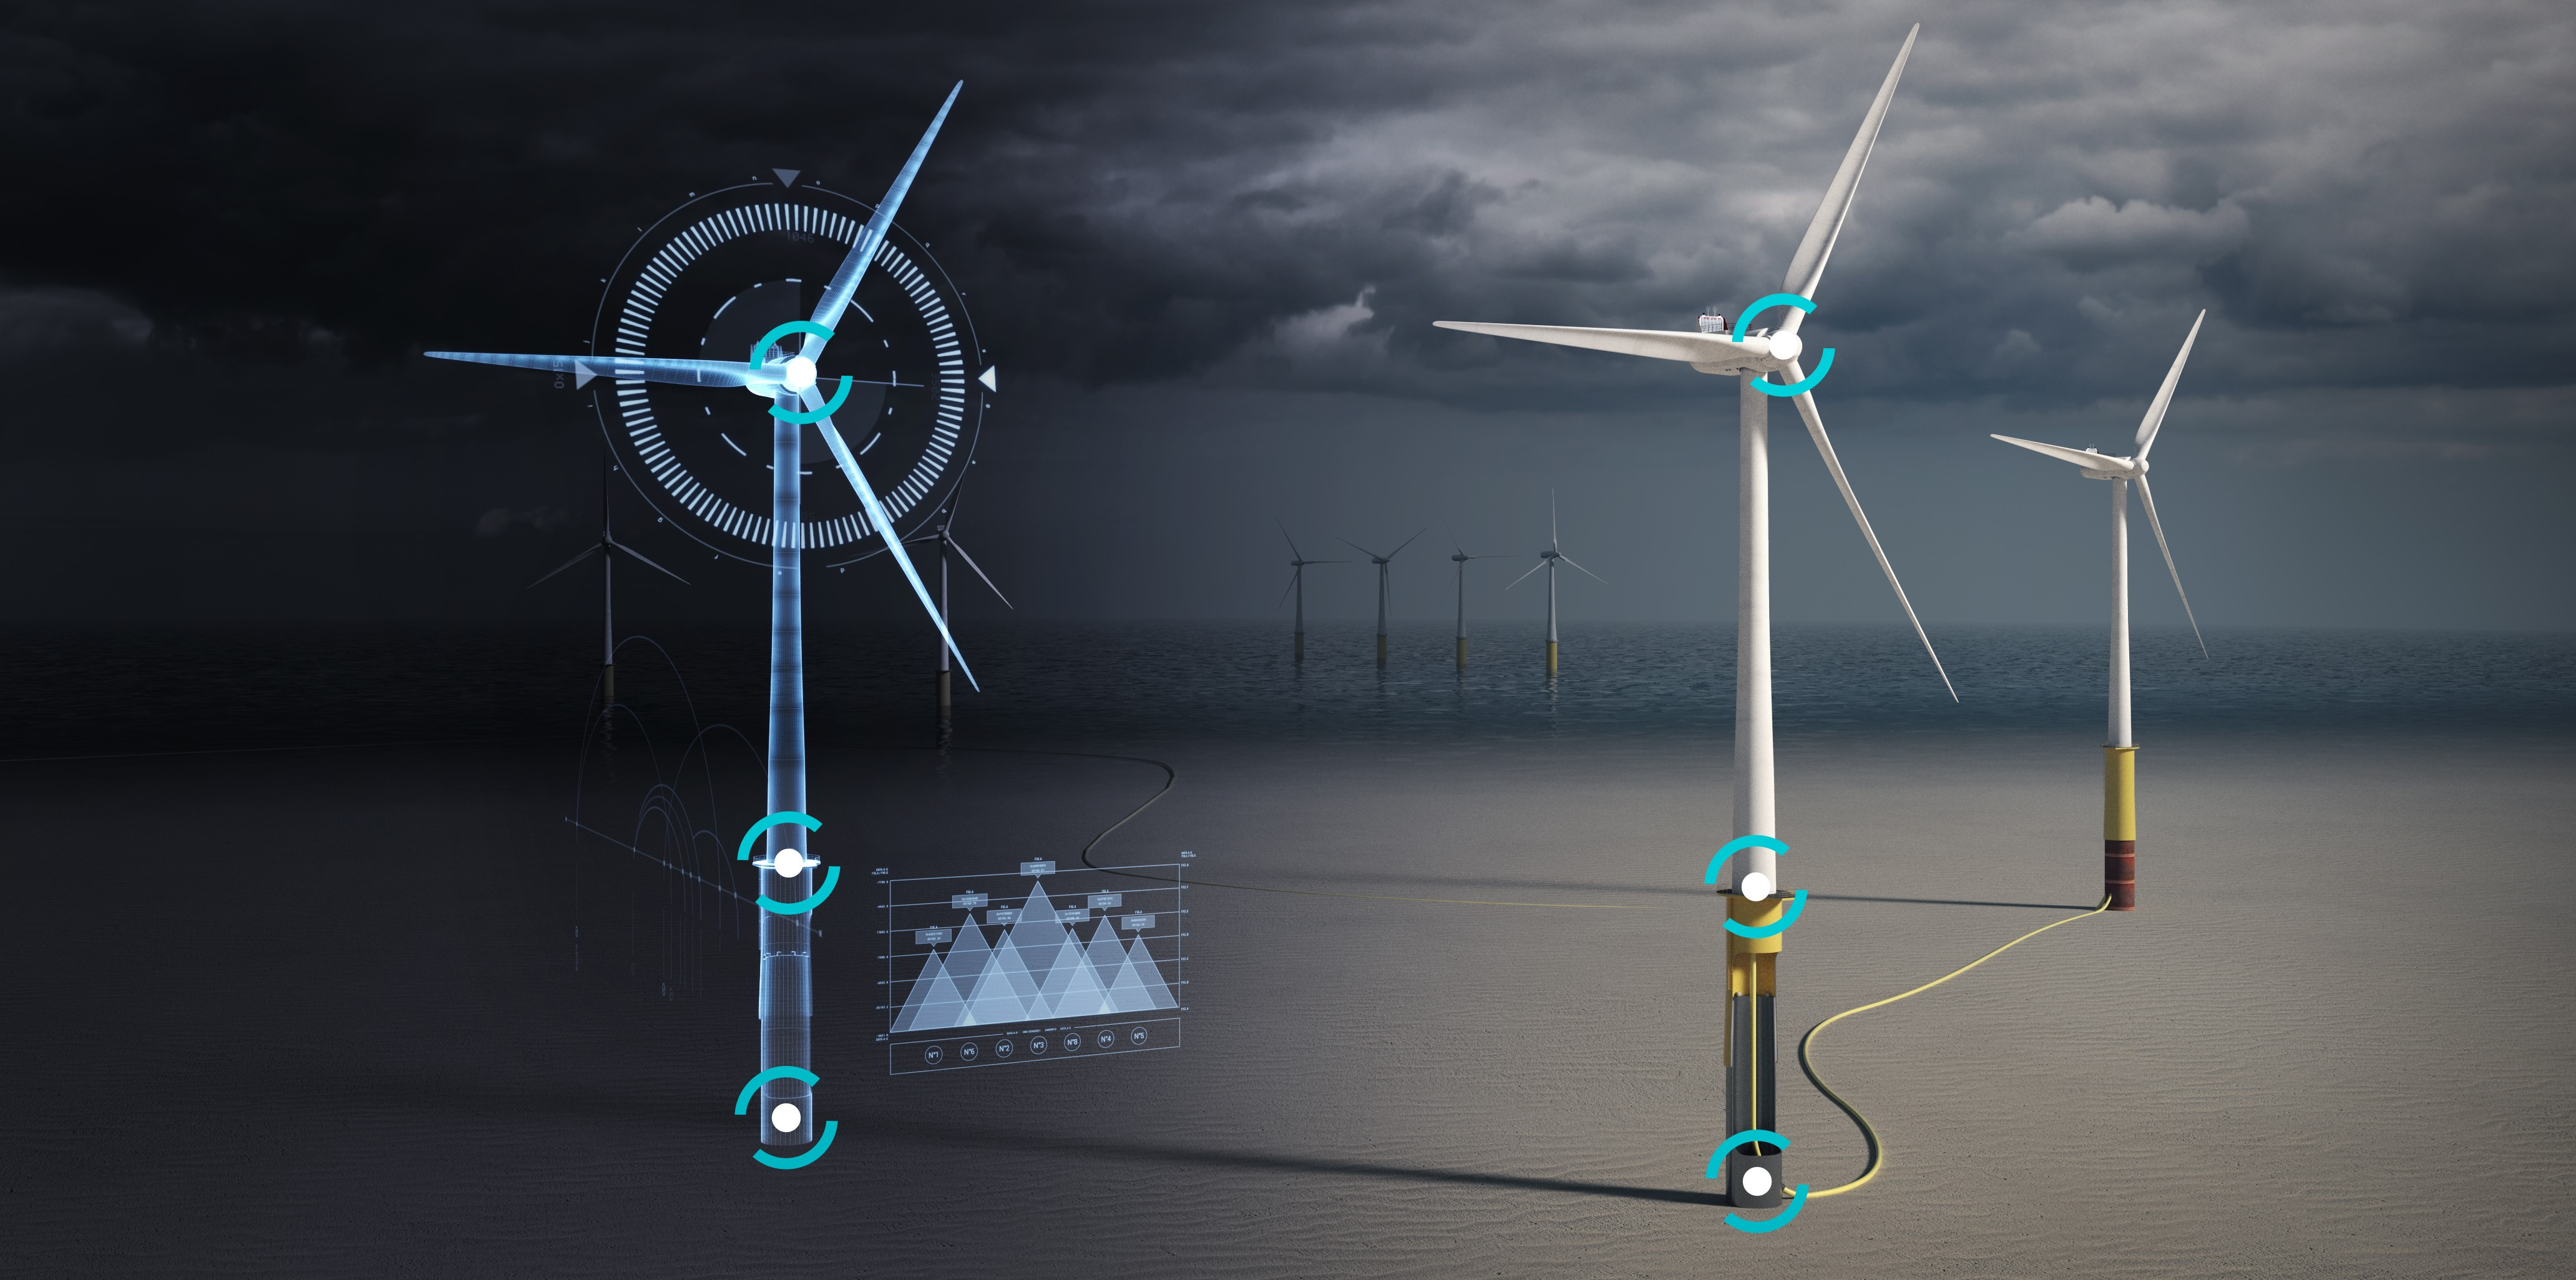 4Subsea_DigitalTwin_Wind all rights reserved